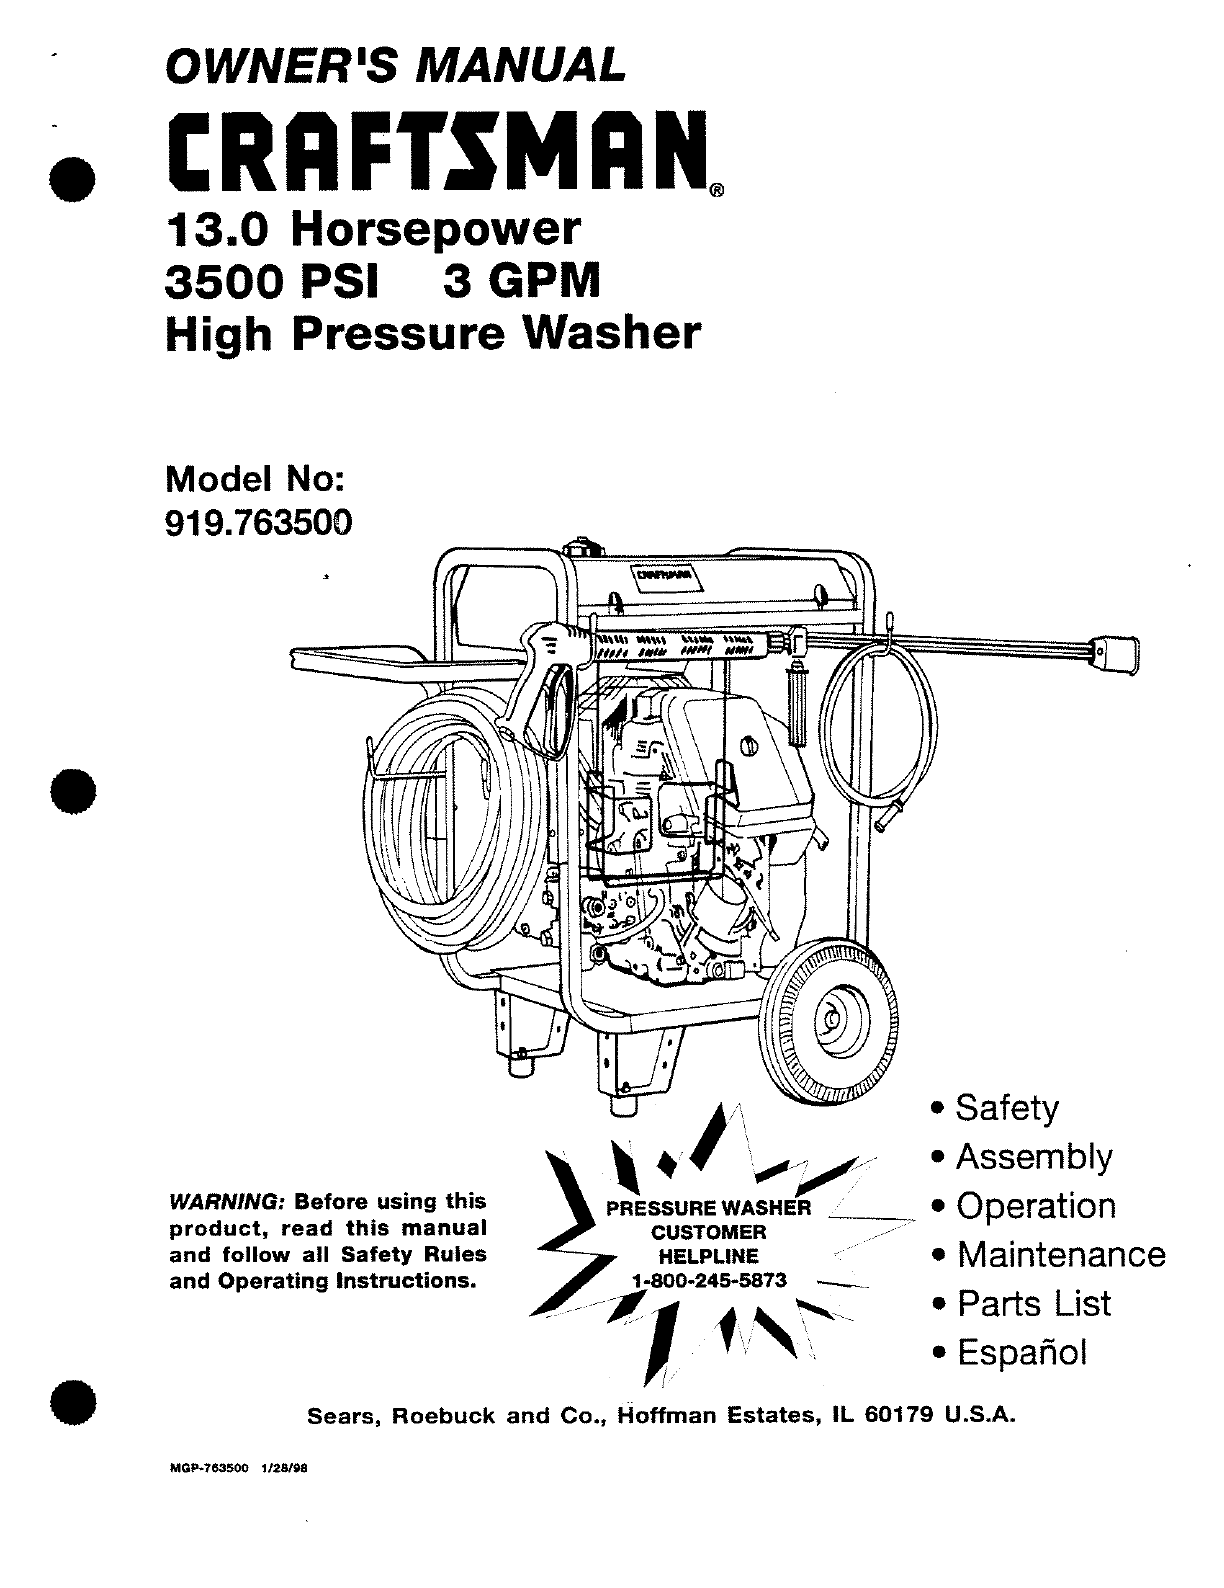 Craftsman Pressure Washer MGP-743500 User Guide